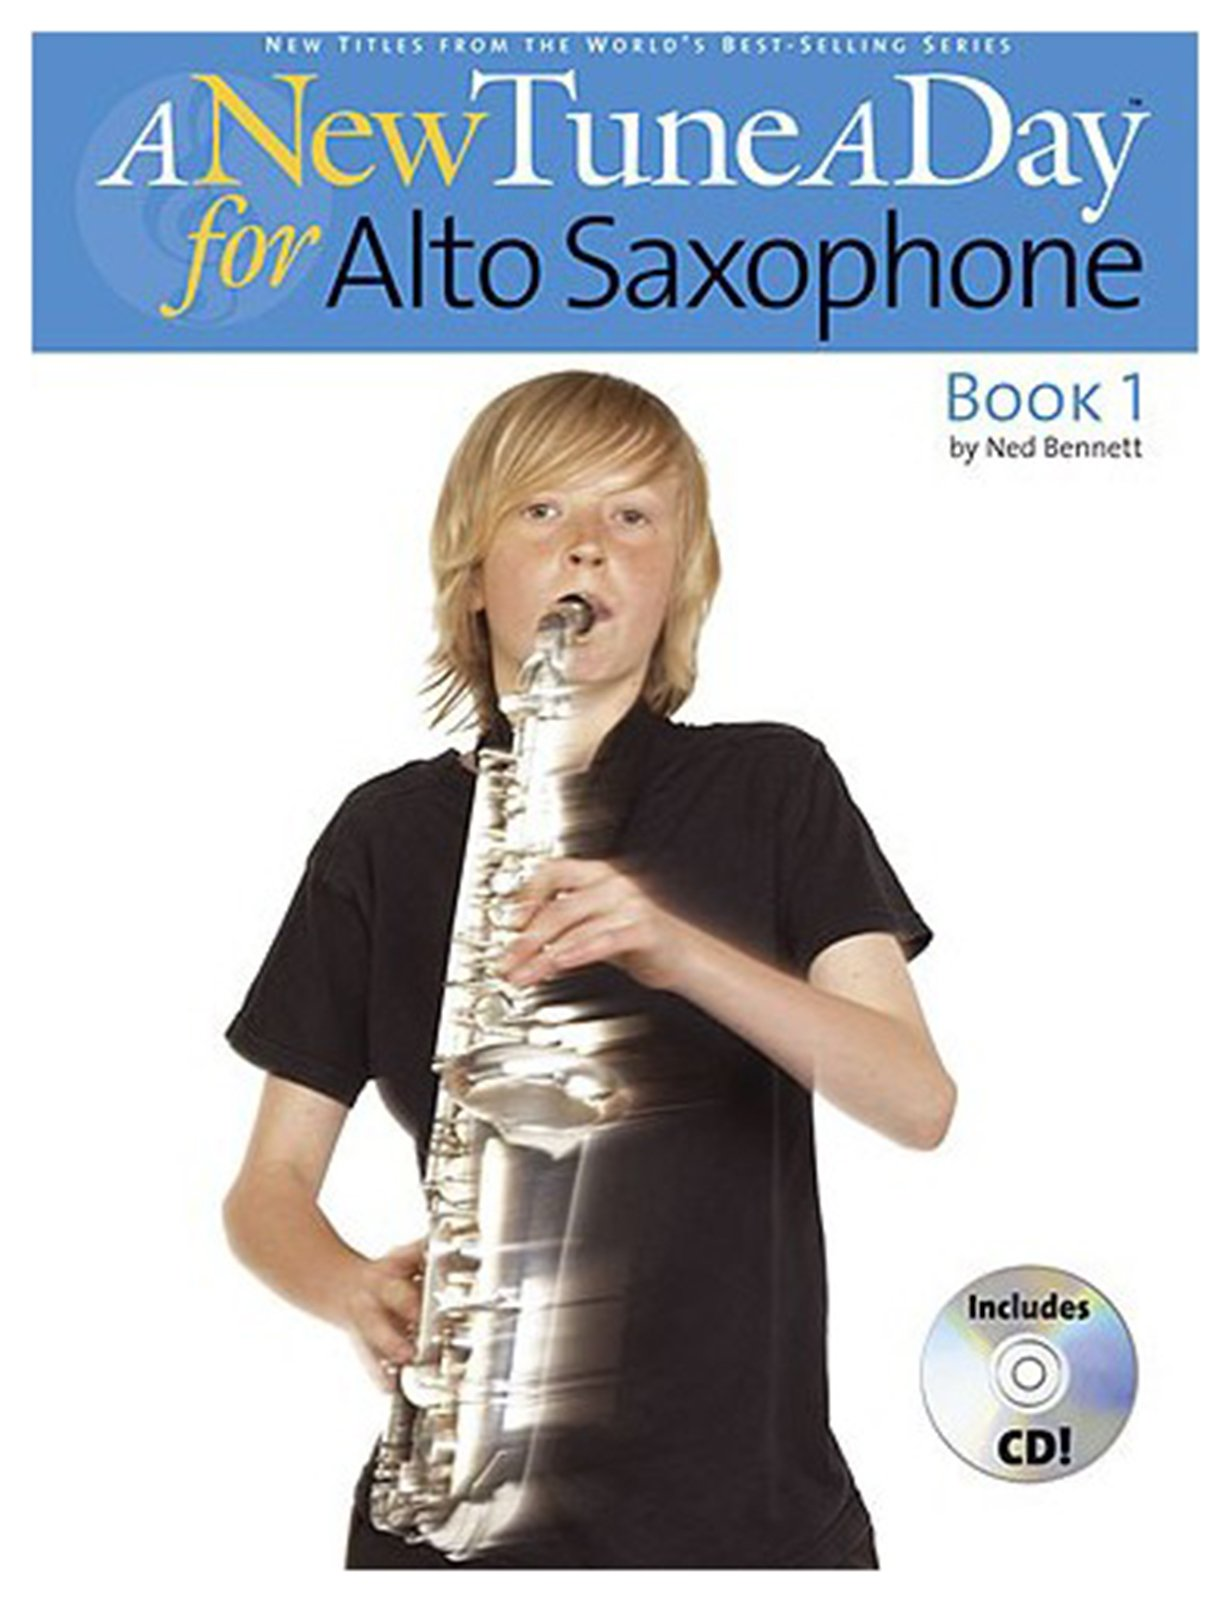 Image of Boston Music - A New Tune a Day for Alto Saxophone Book